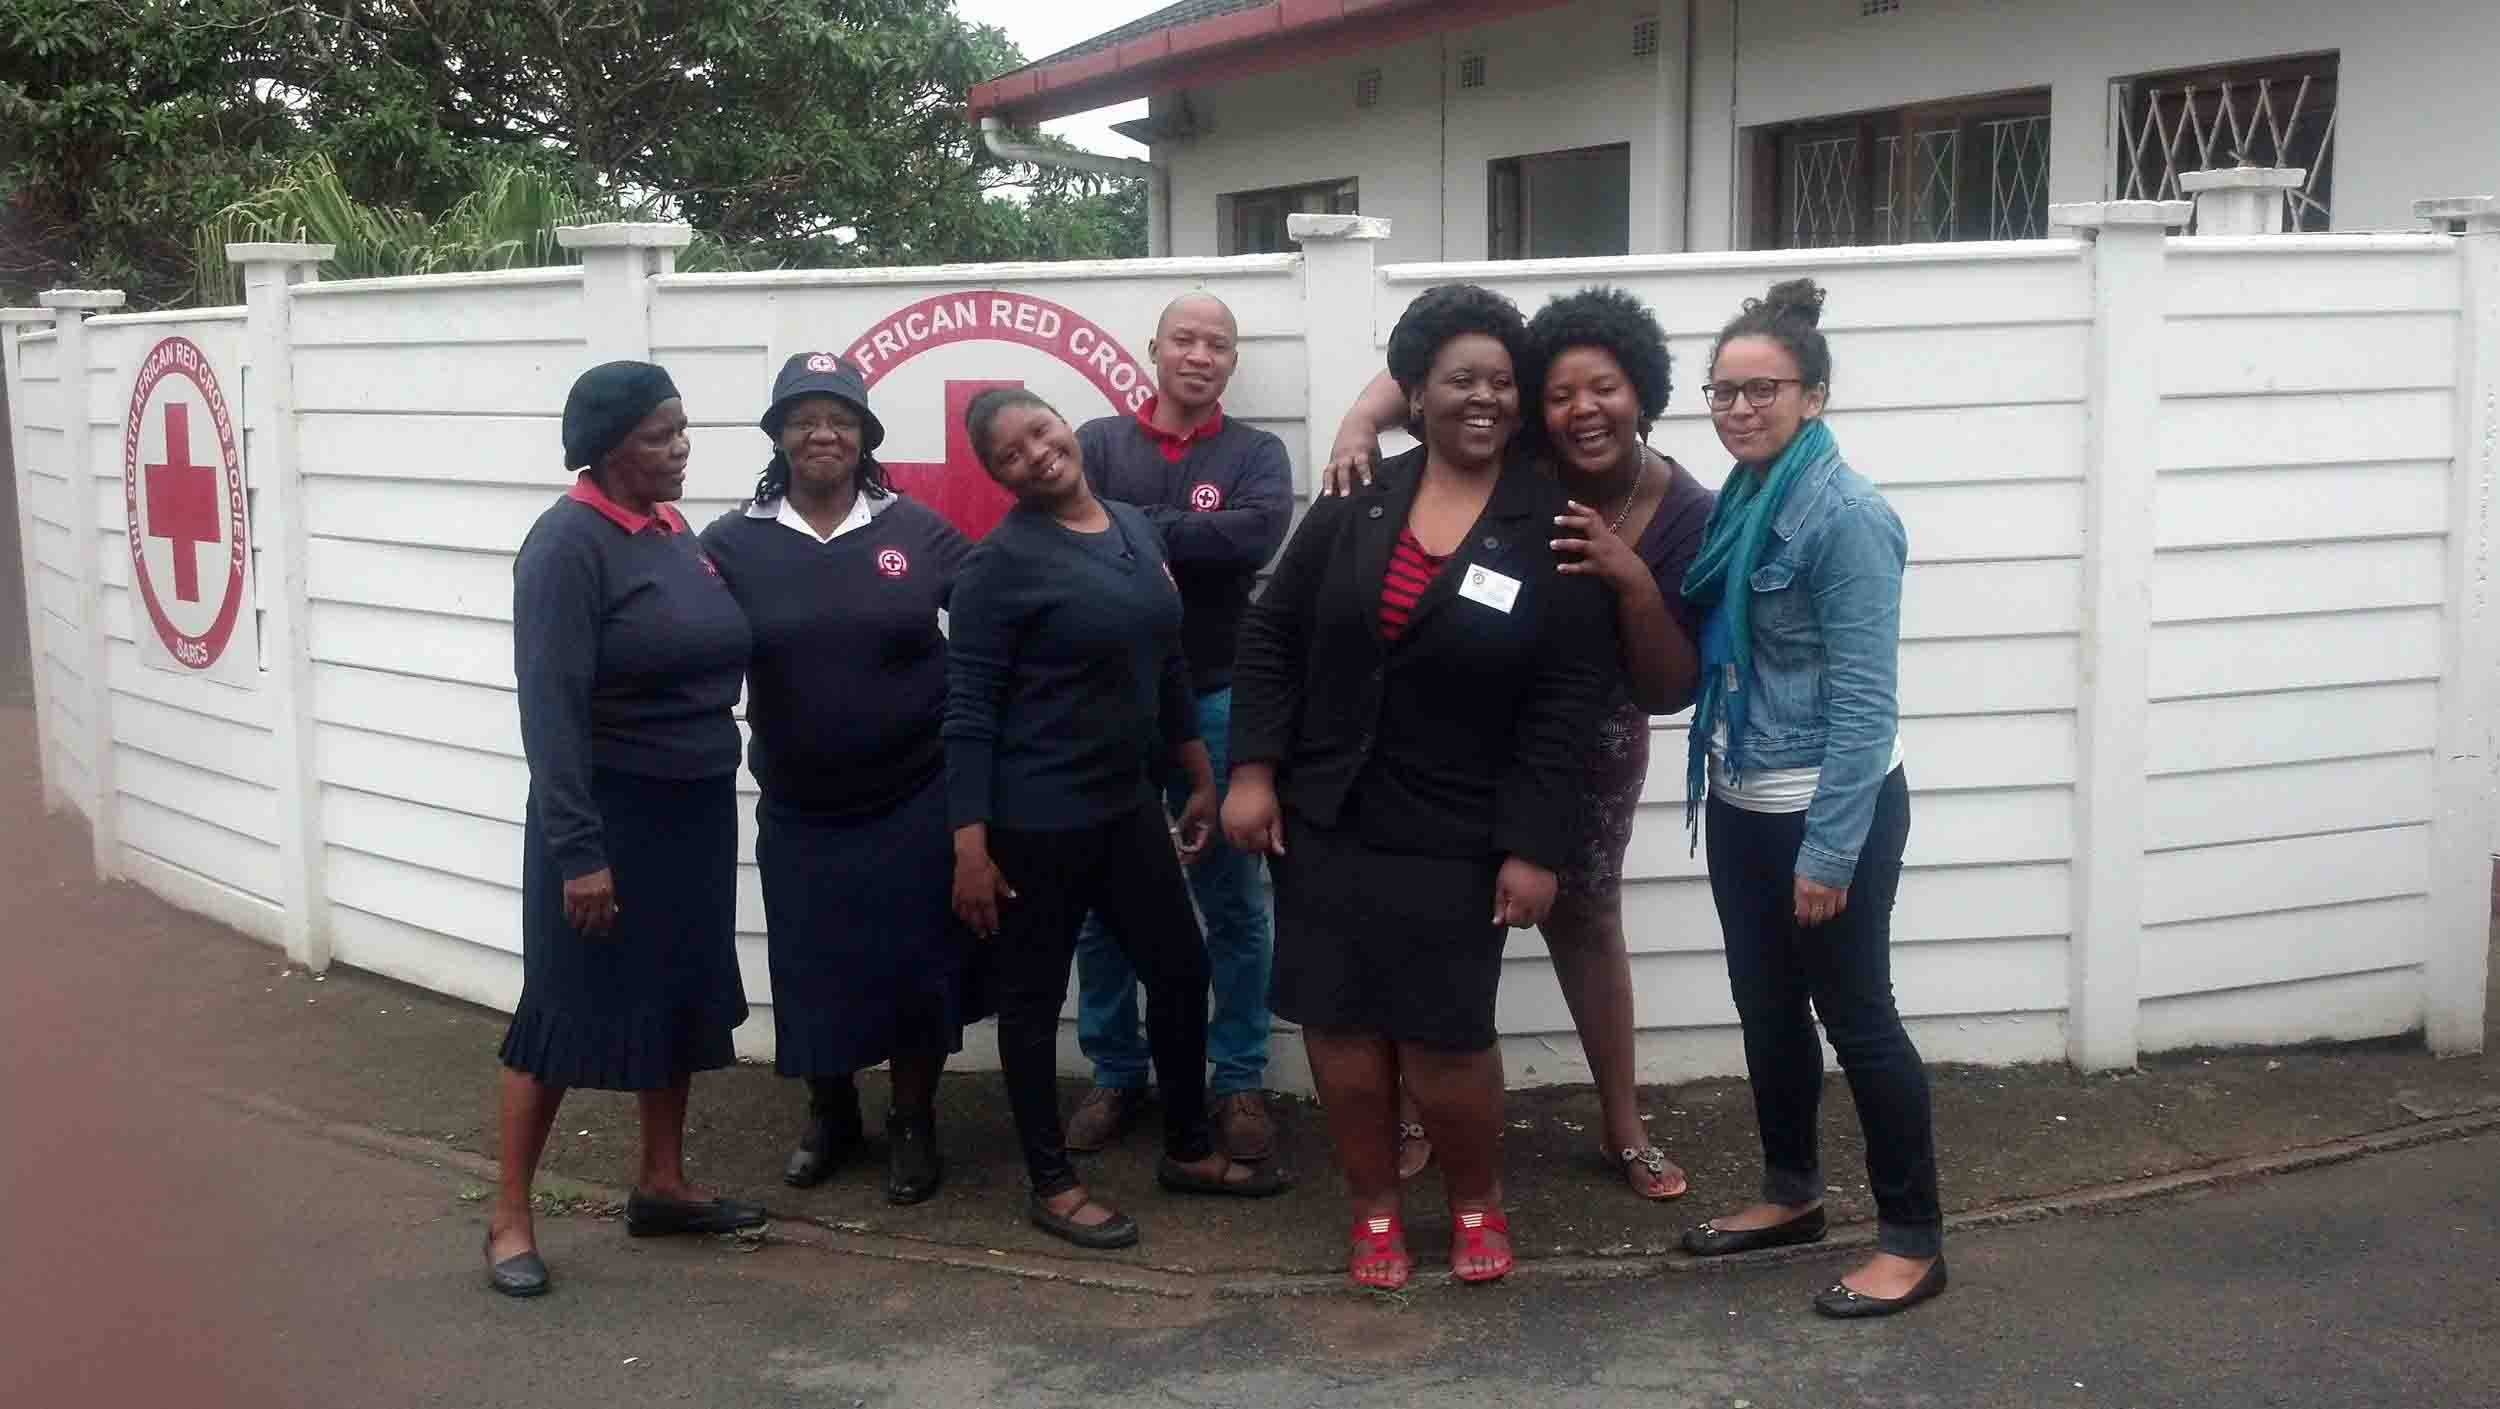 WomenOne's research consultant with the South African Red Cross Team